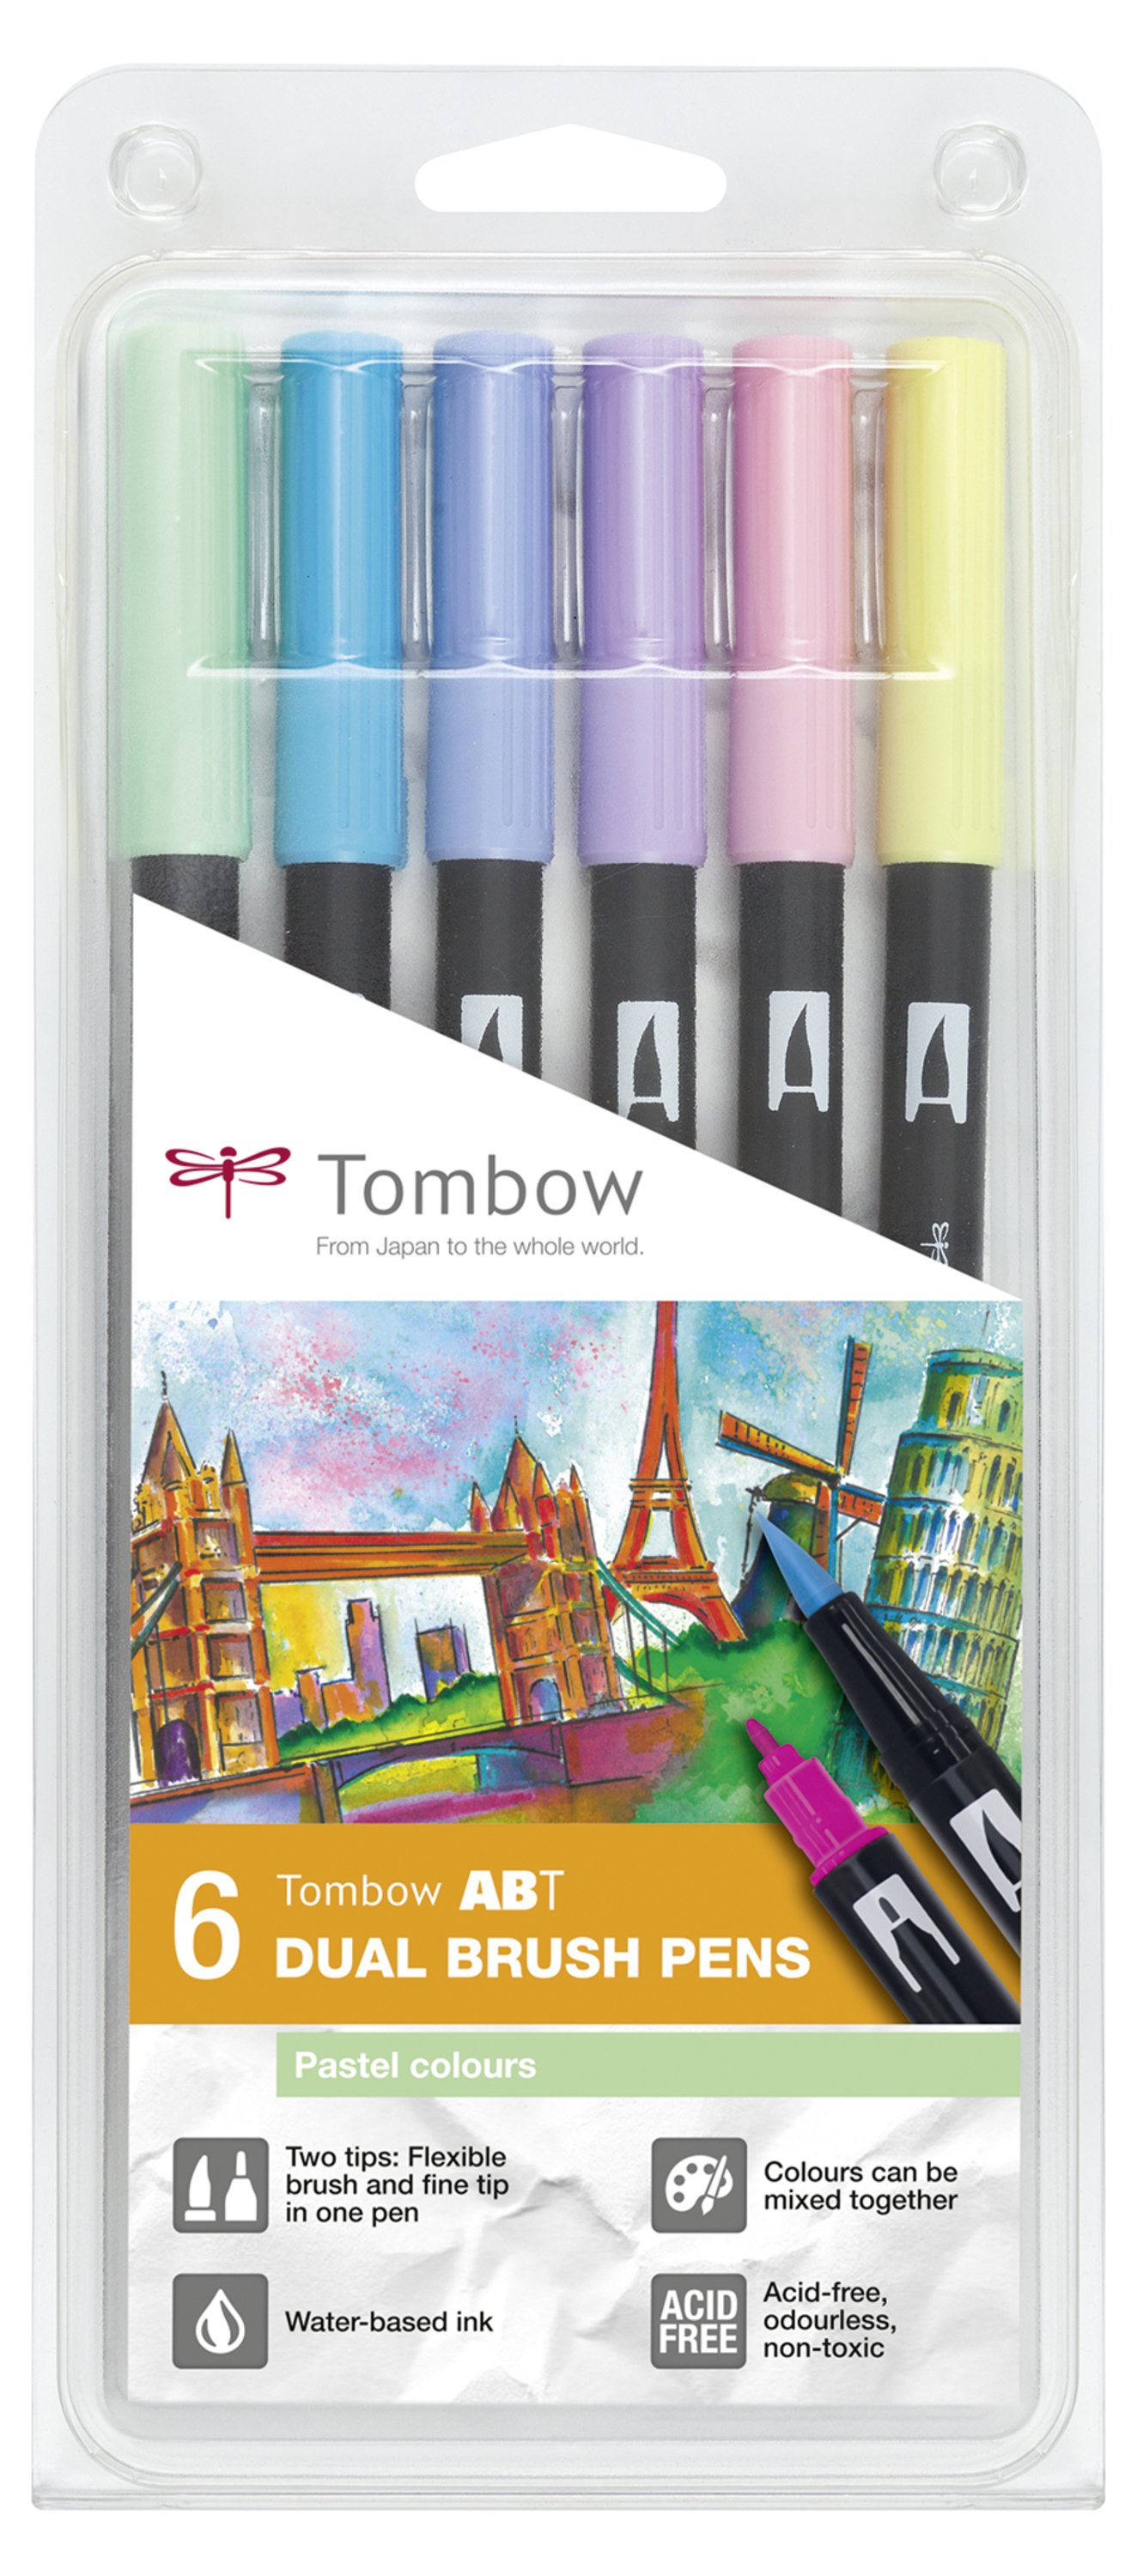 Tombow ABT Dual Brush Pen 2 tips Pastel Colours PK6